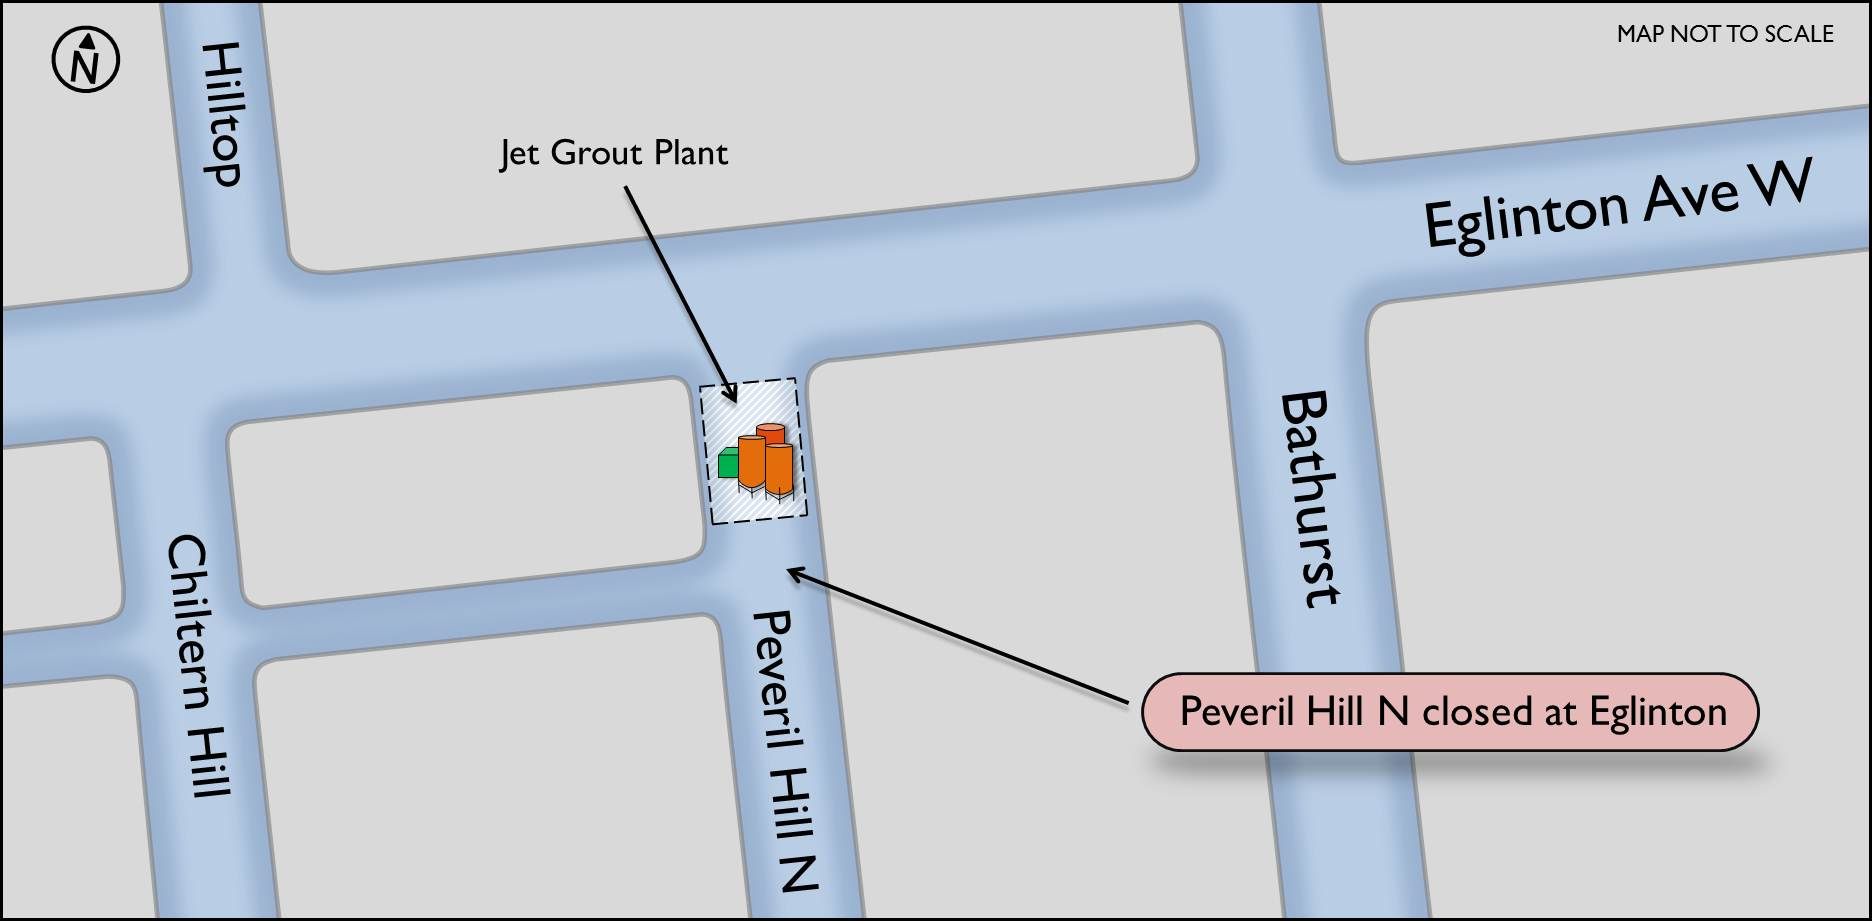 Map of Peveril Hill w jet grout plant